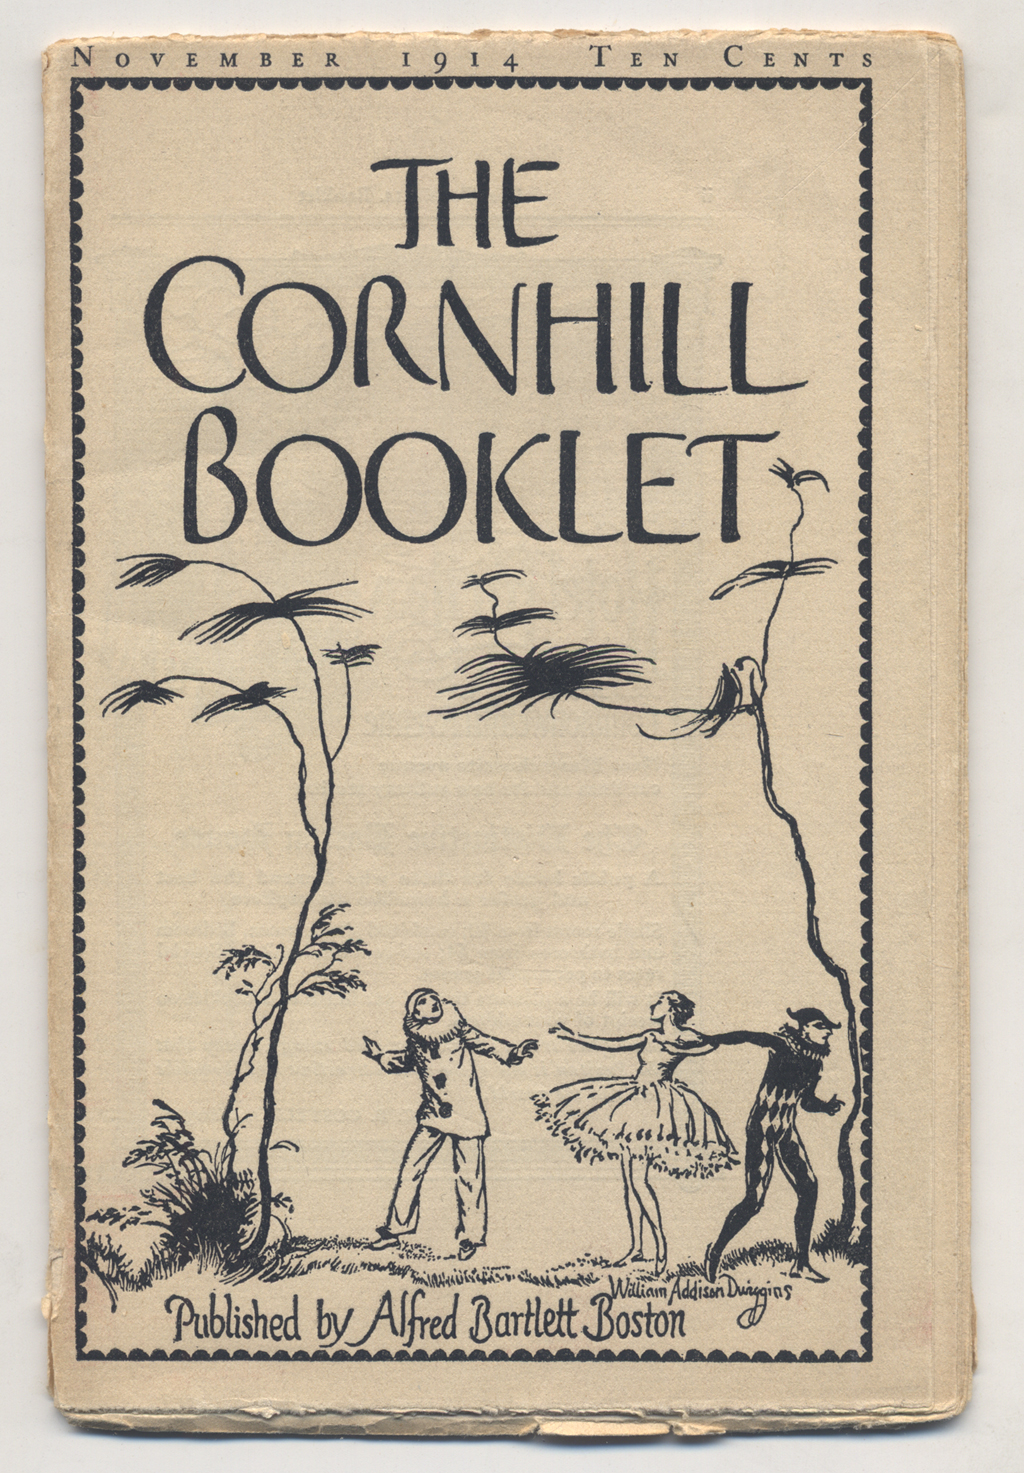 The Cornhill Booklet (November 1914). Cover design by W.A. Dwiggins.